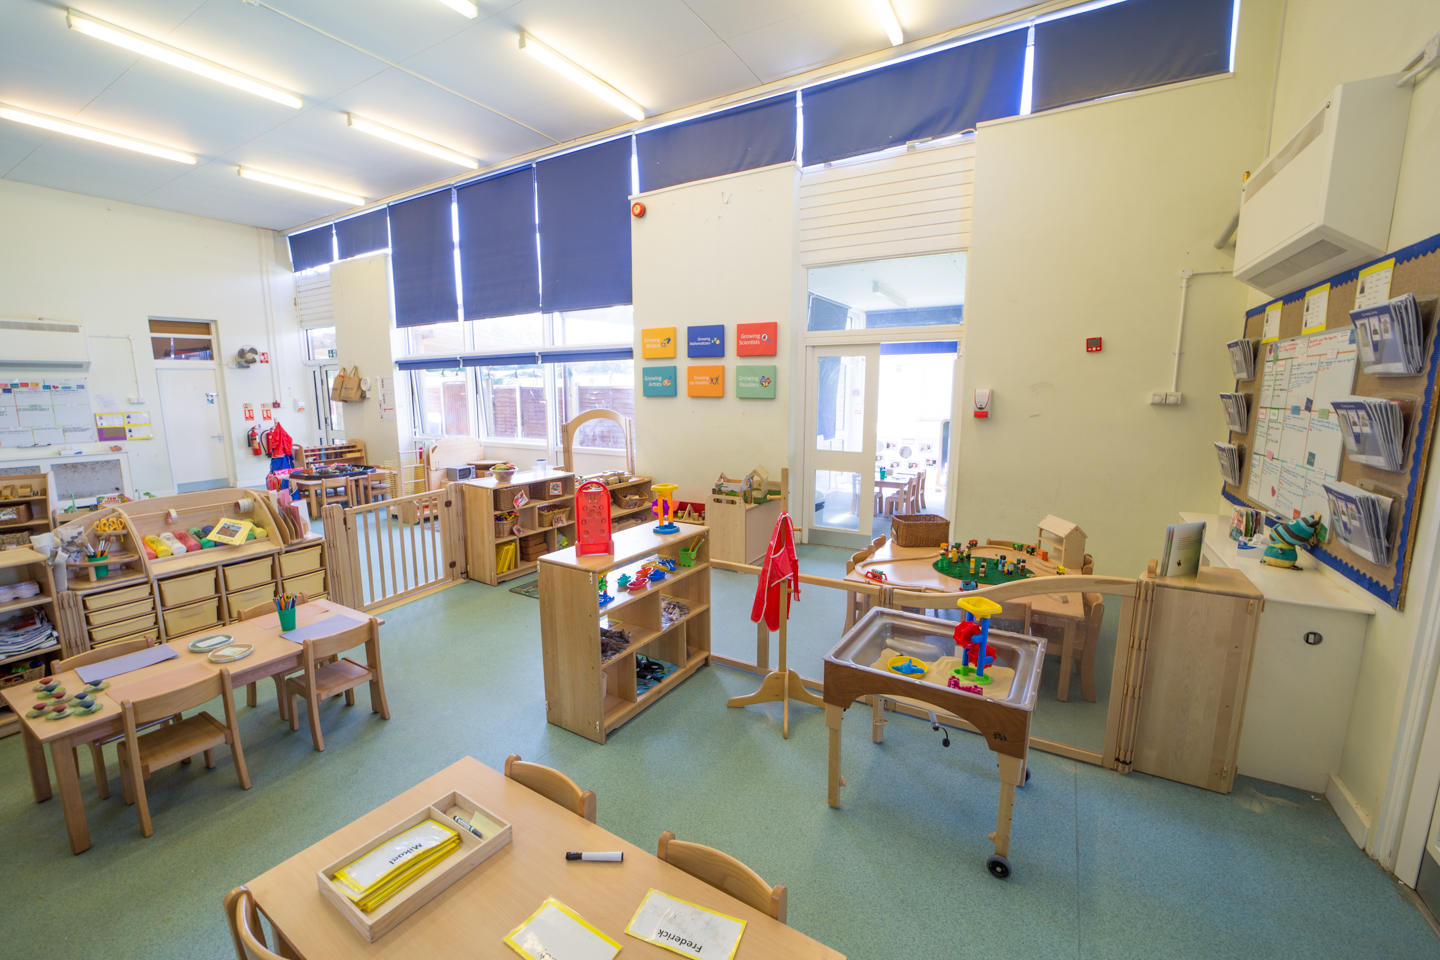 Bright Horizons Leverstock Green Day Nursery and Preschool